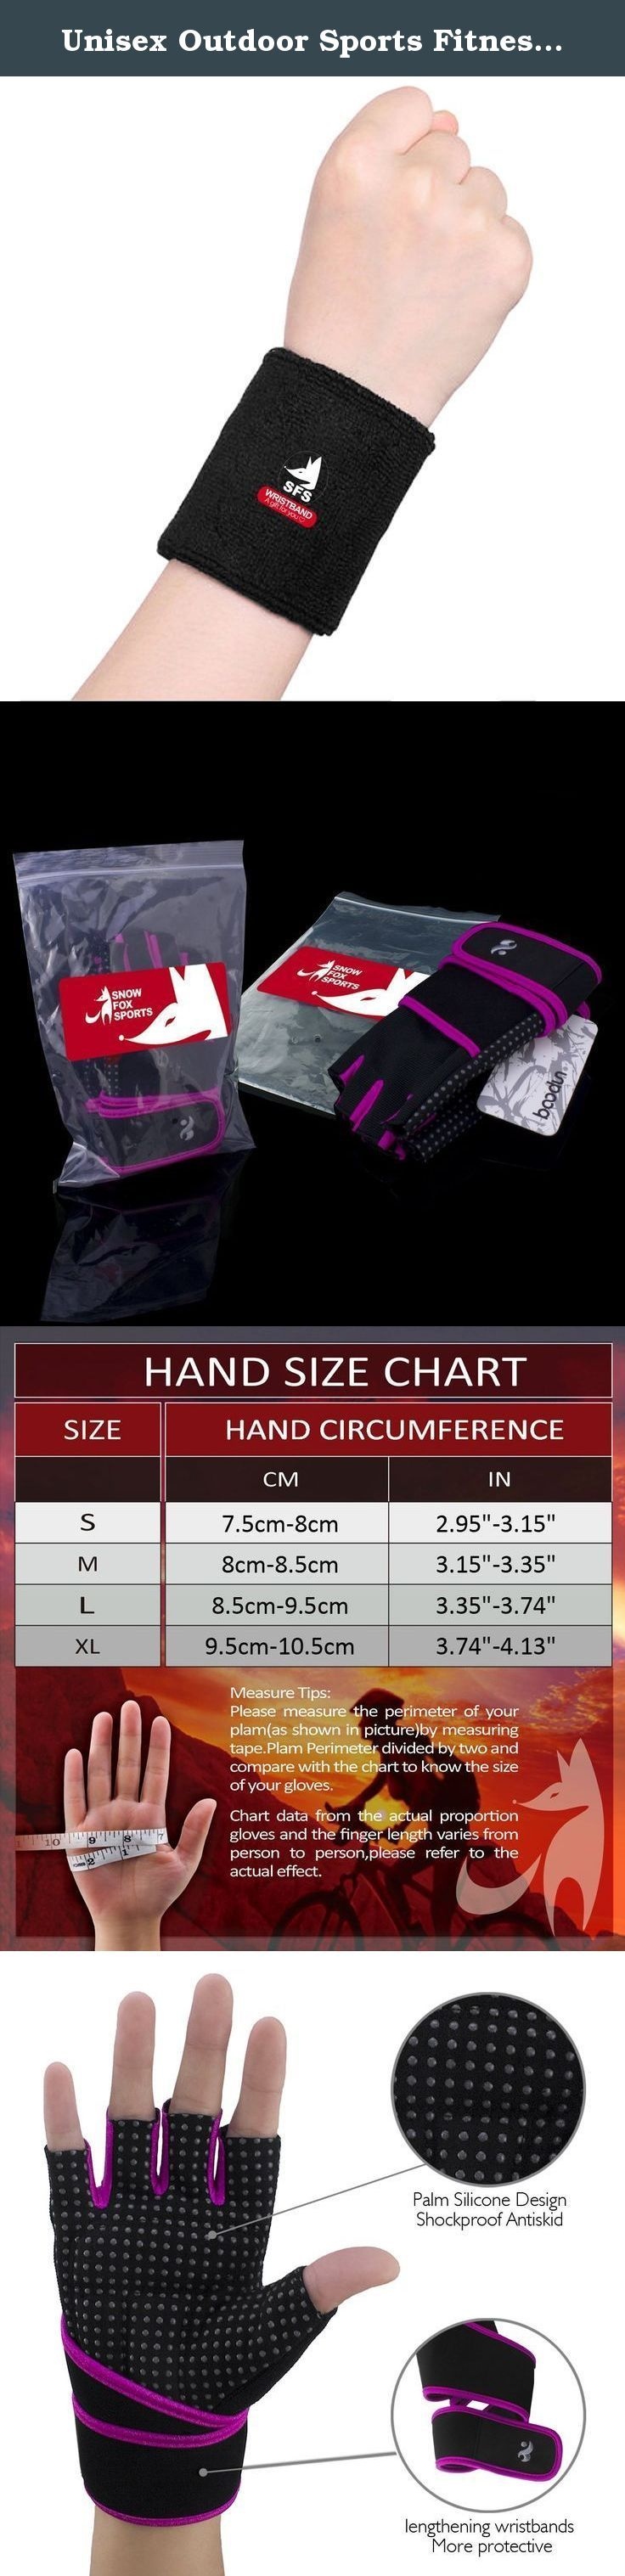 Unisex Outdoor Sports Fitness Half Finger Antiskid Bike Cycling Gloves Weightlifting Instrument Dumbbell Lengthening Wristbands Gloves. Outdoor Bicycle Cycling Mountain Bike Gloves Fitness Training Gloves Running Hiking Motorcycle Half-finger Gloves Product Warranty: Our gloves will be all shipped directly from Amazon's Warehouse sold by Snow Fox Sports Direct, which can ensure that you could receive the parcel safely and quickly. We promise a 30-Day Money Back Product Quality Guarantee...